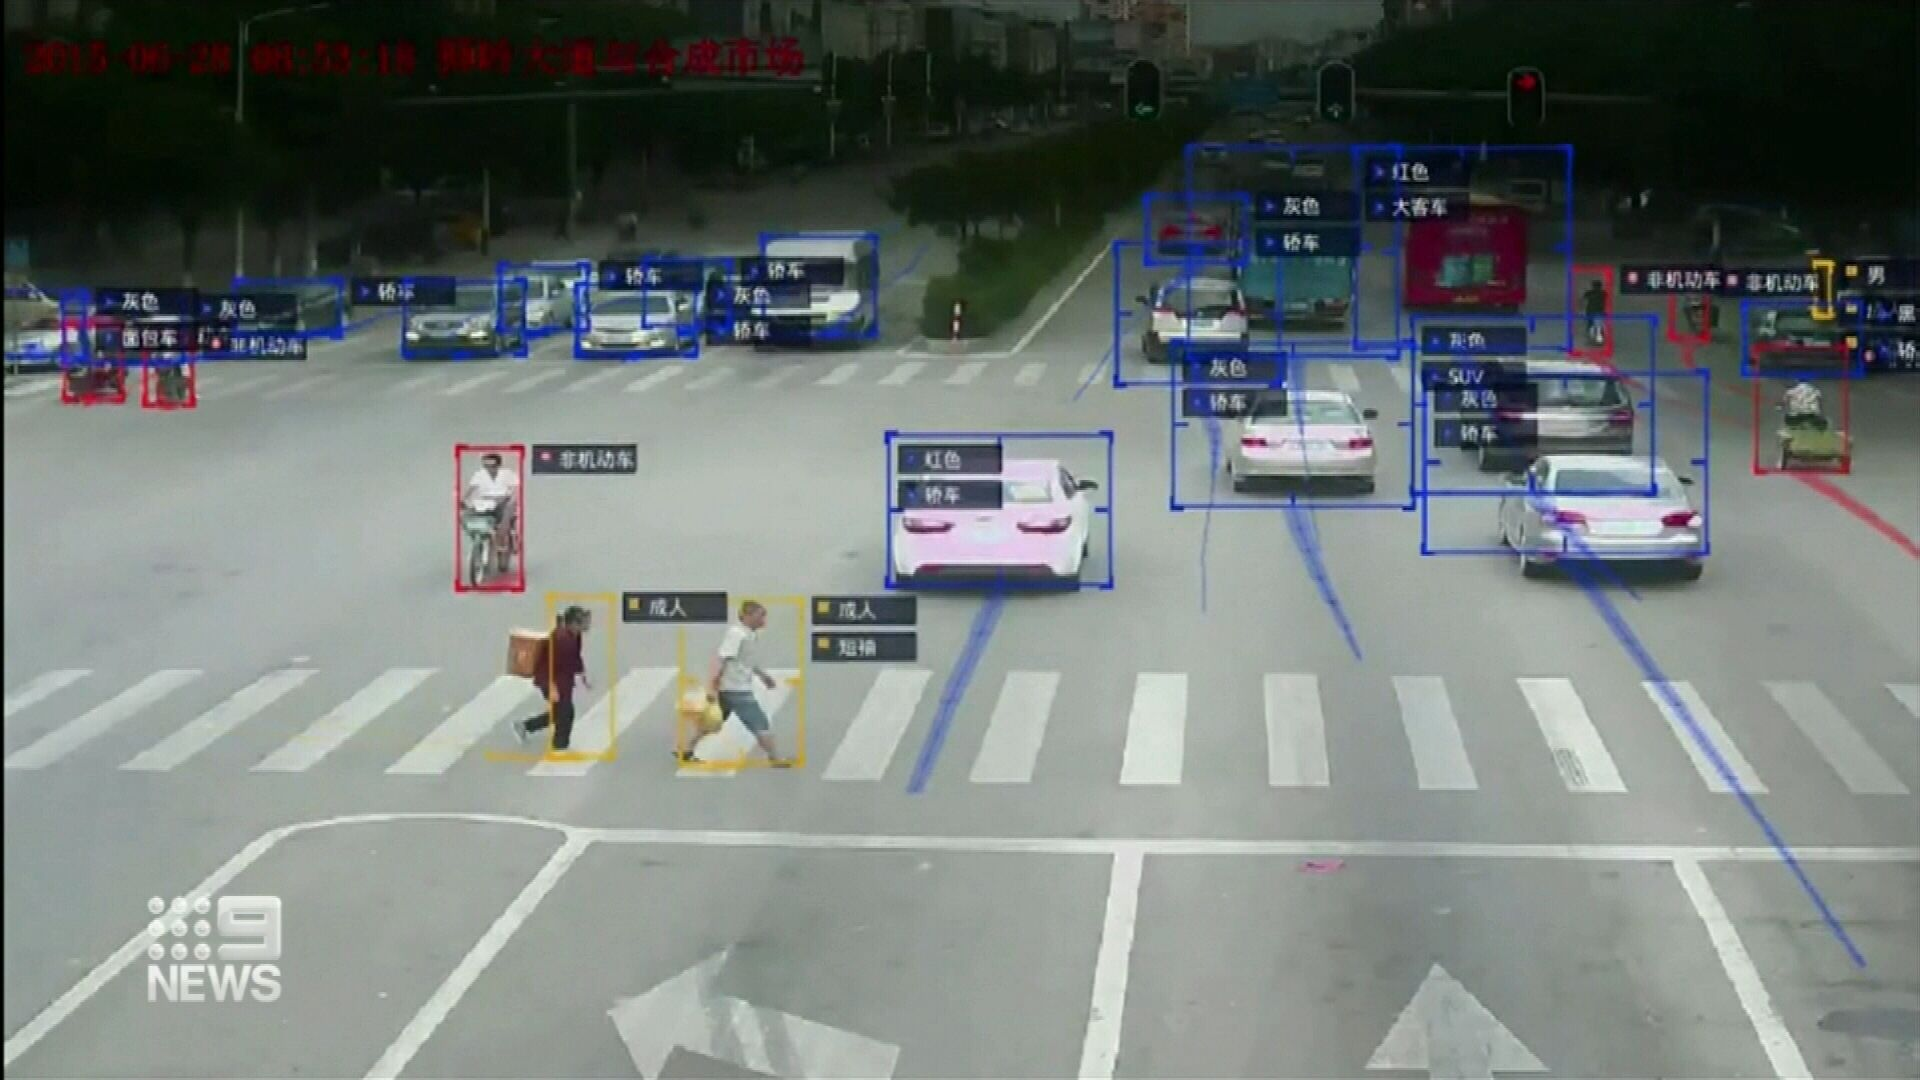 Privacy fears sparked by new 'AI camera'